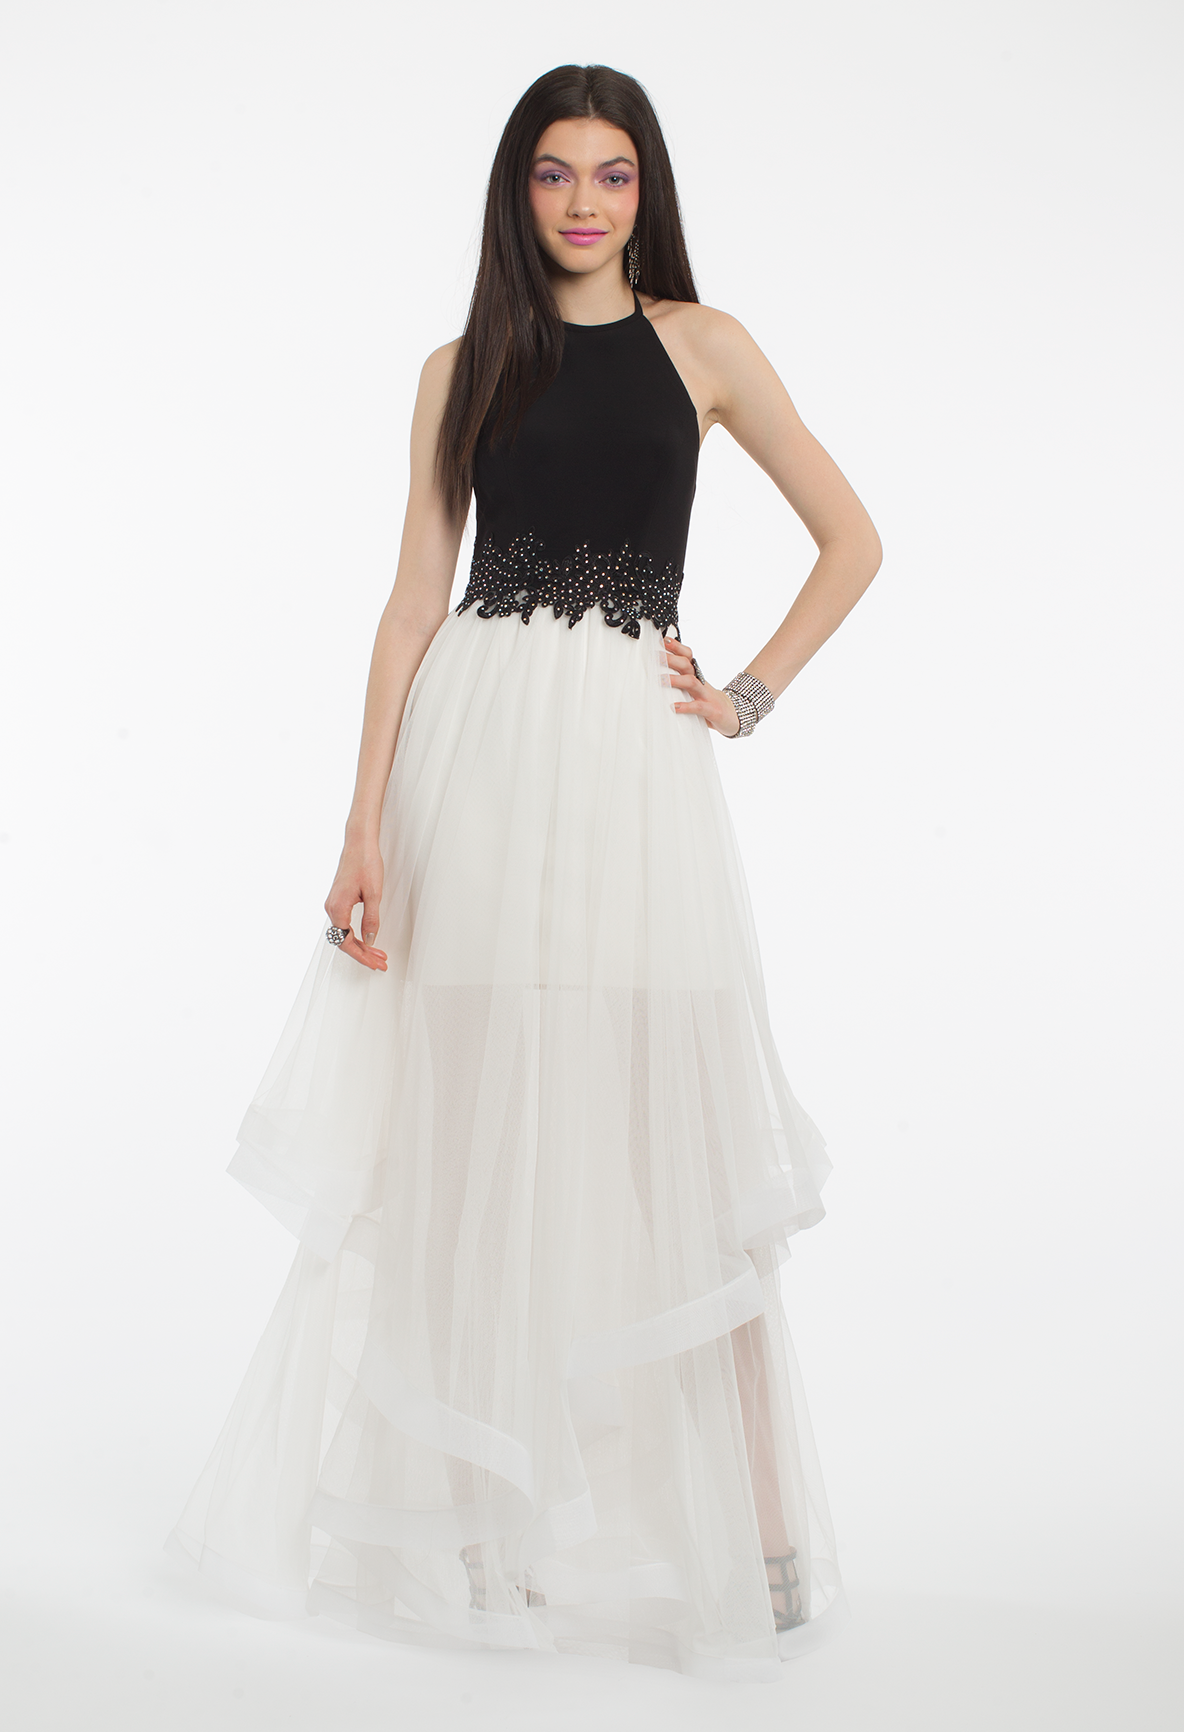 Take a twirl on the dance floor in this pretty evening gown the